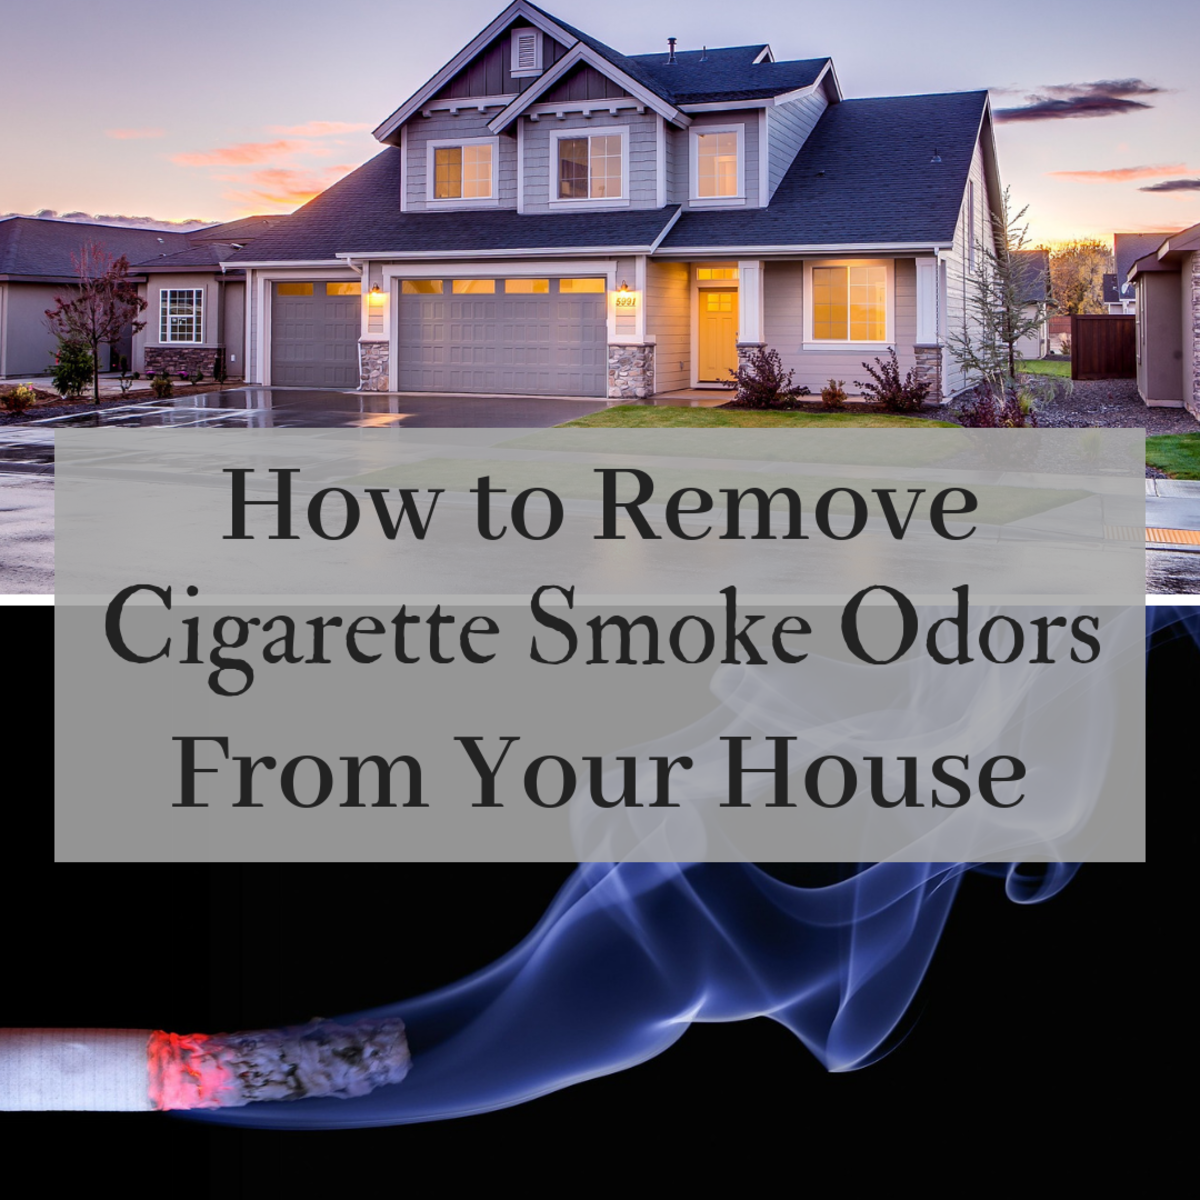 How To Get The Cigarette Smoke Smell Out Of Your House A Step By